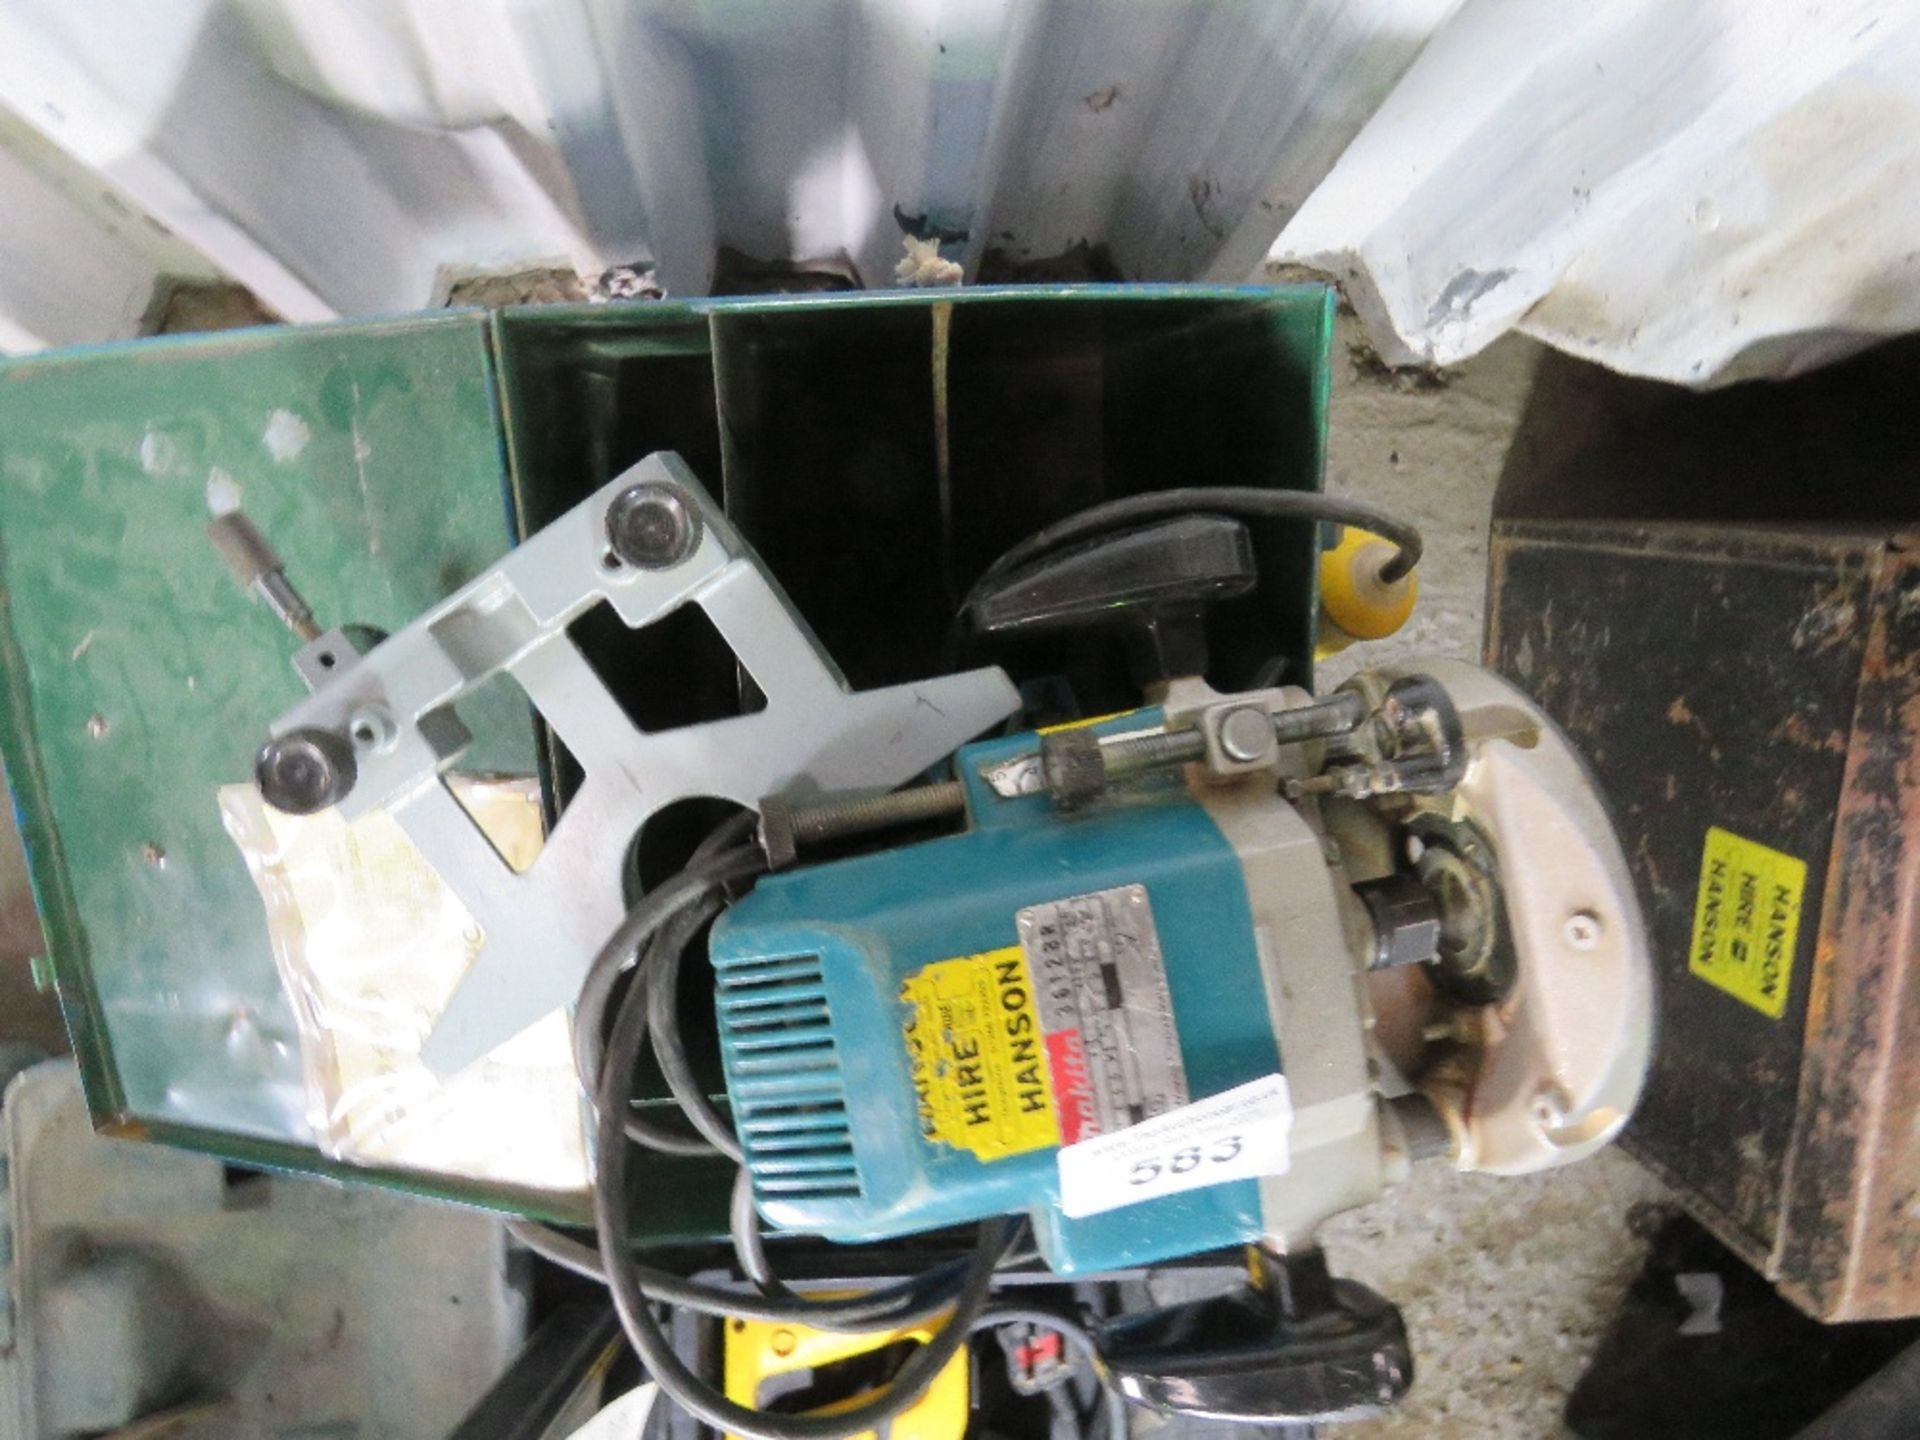 MAKITA 110VOLT ROUTER WITH GUIDE. UNTESTED, CONDITION UNKNOWN. - Image 2 of 2